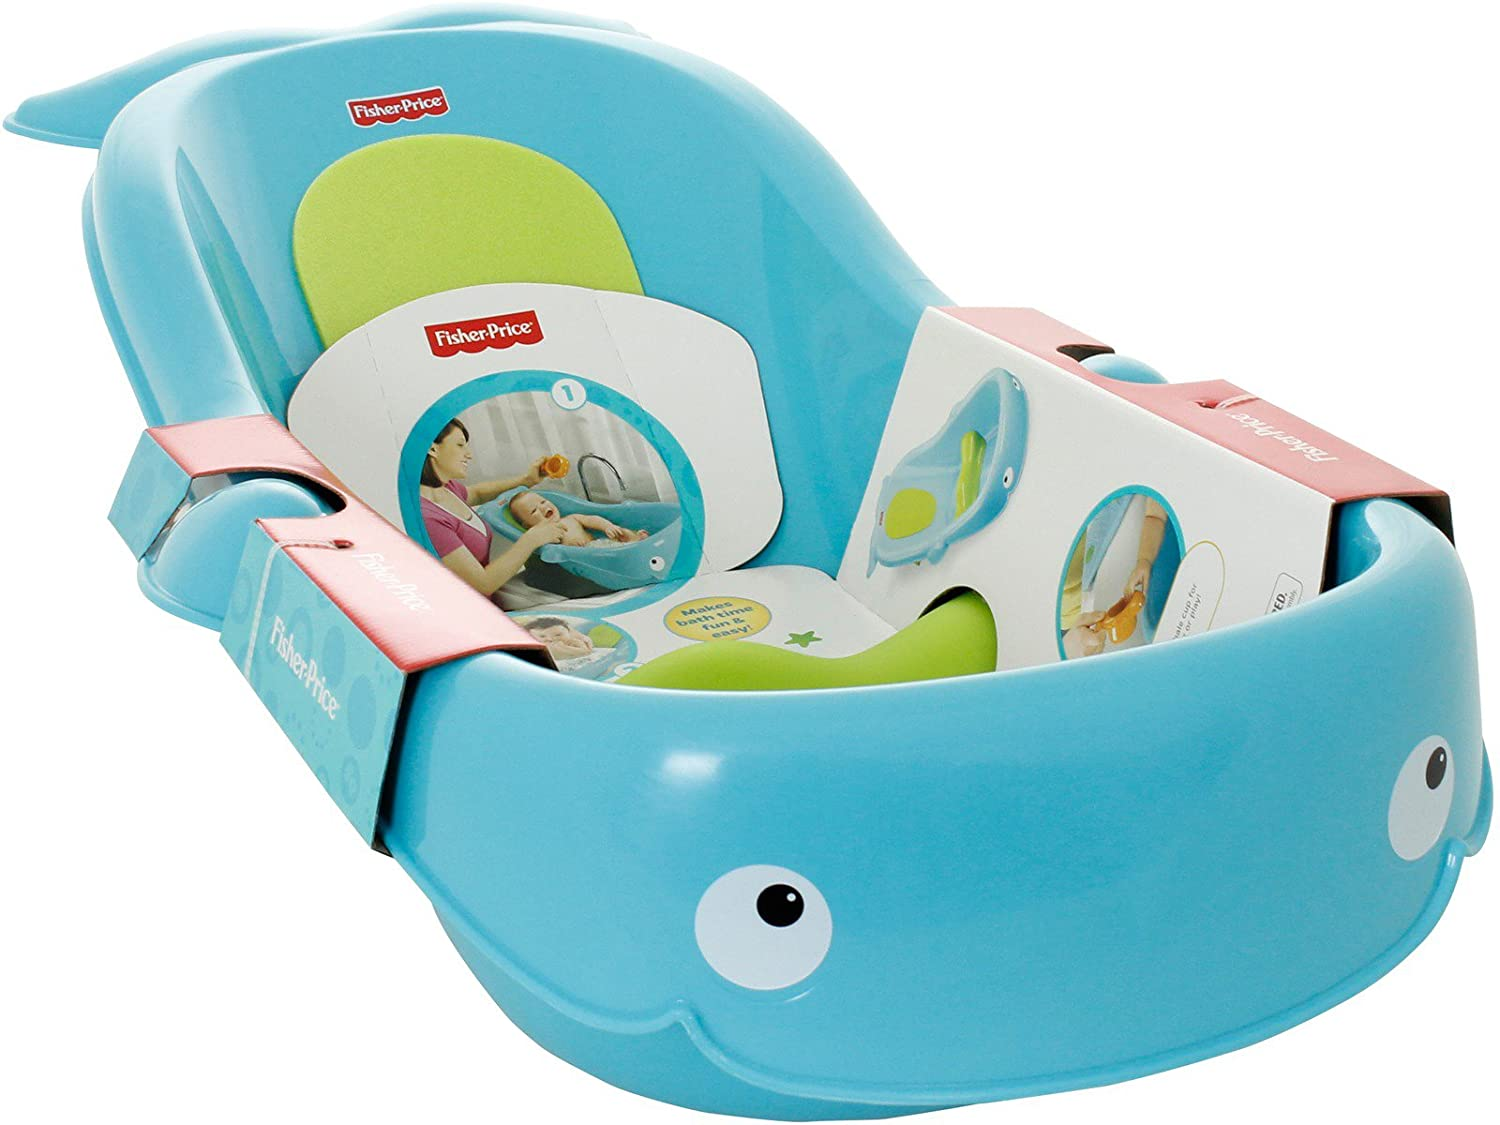 delighted fisher price baby bath tubs images bathtub for bathroom ideas. Black Bedroom Furniture Sets. Home Design Ideas